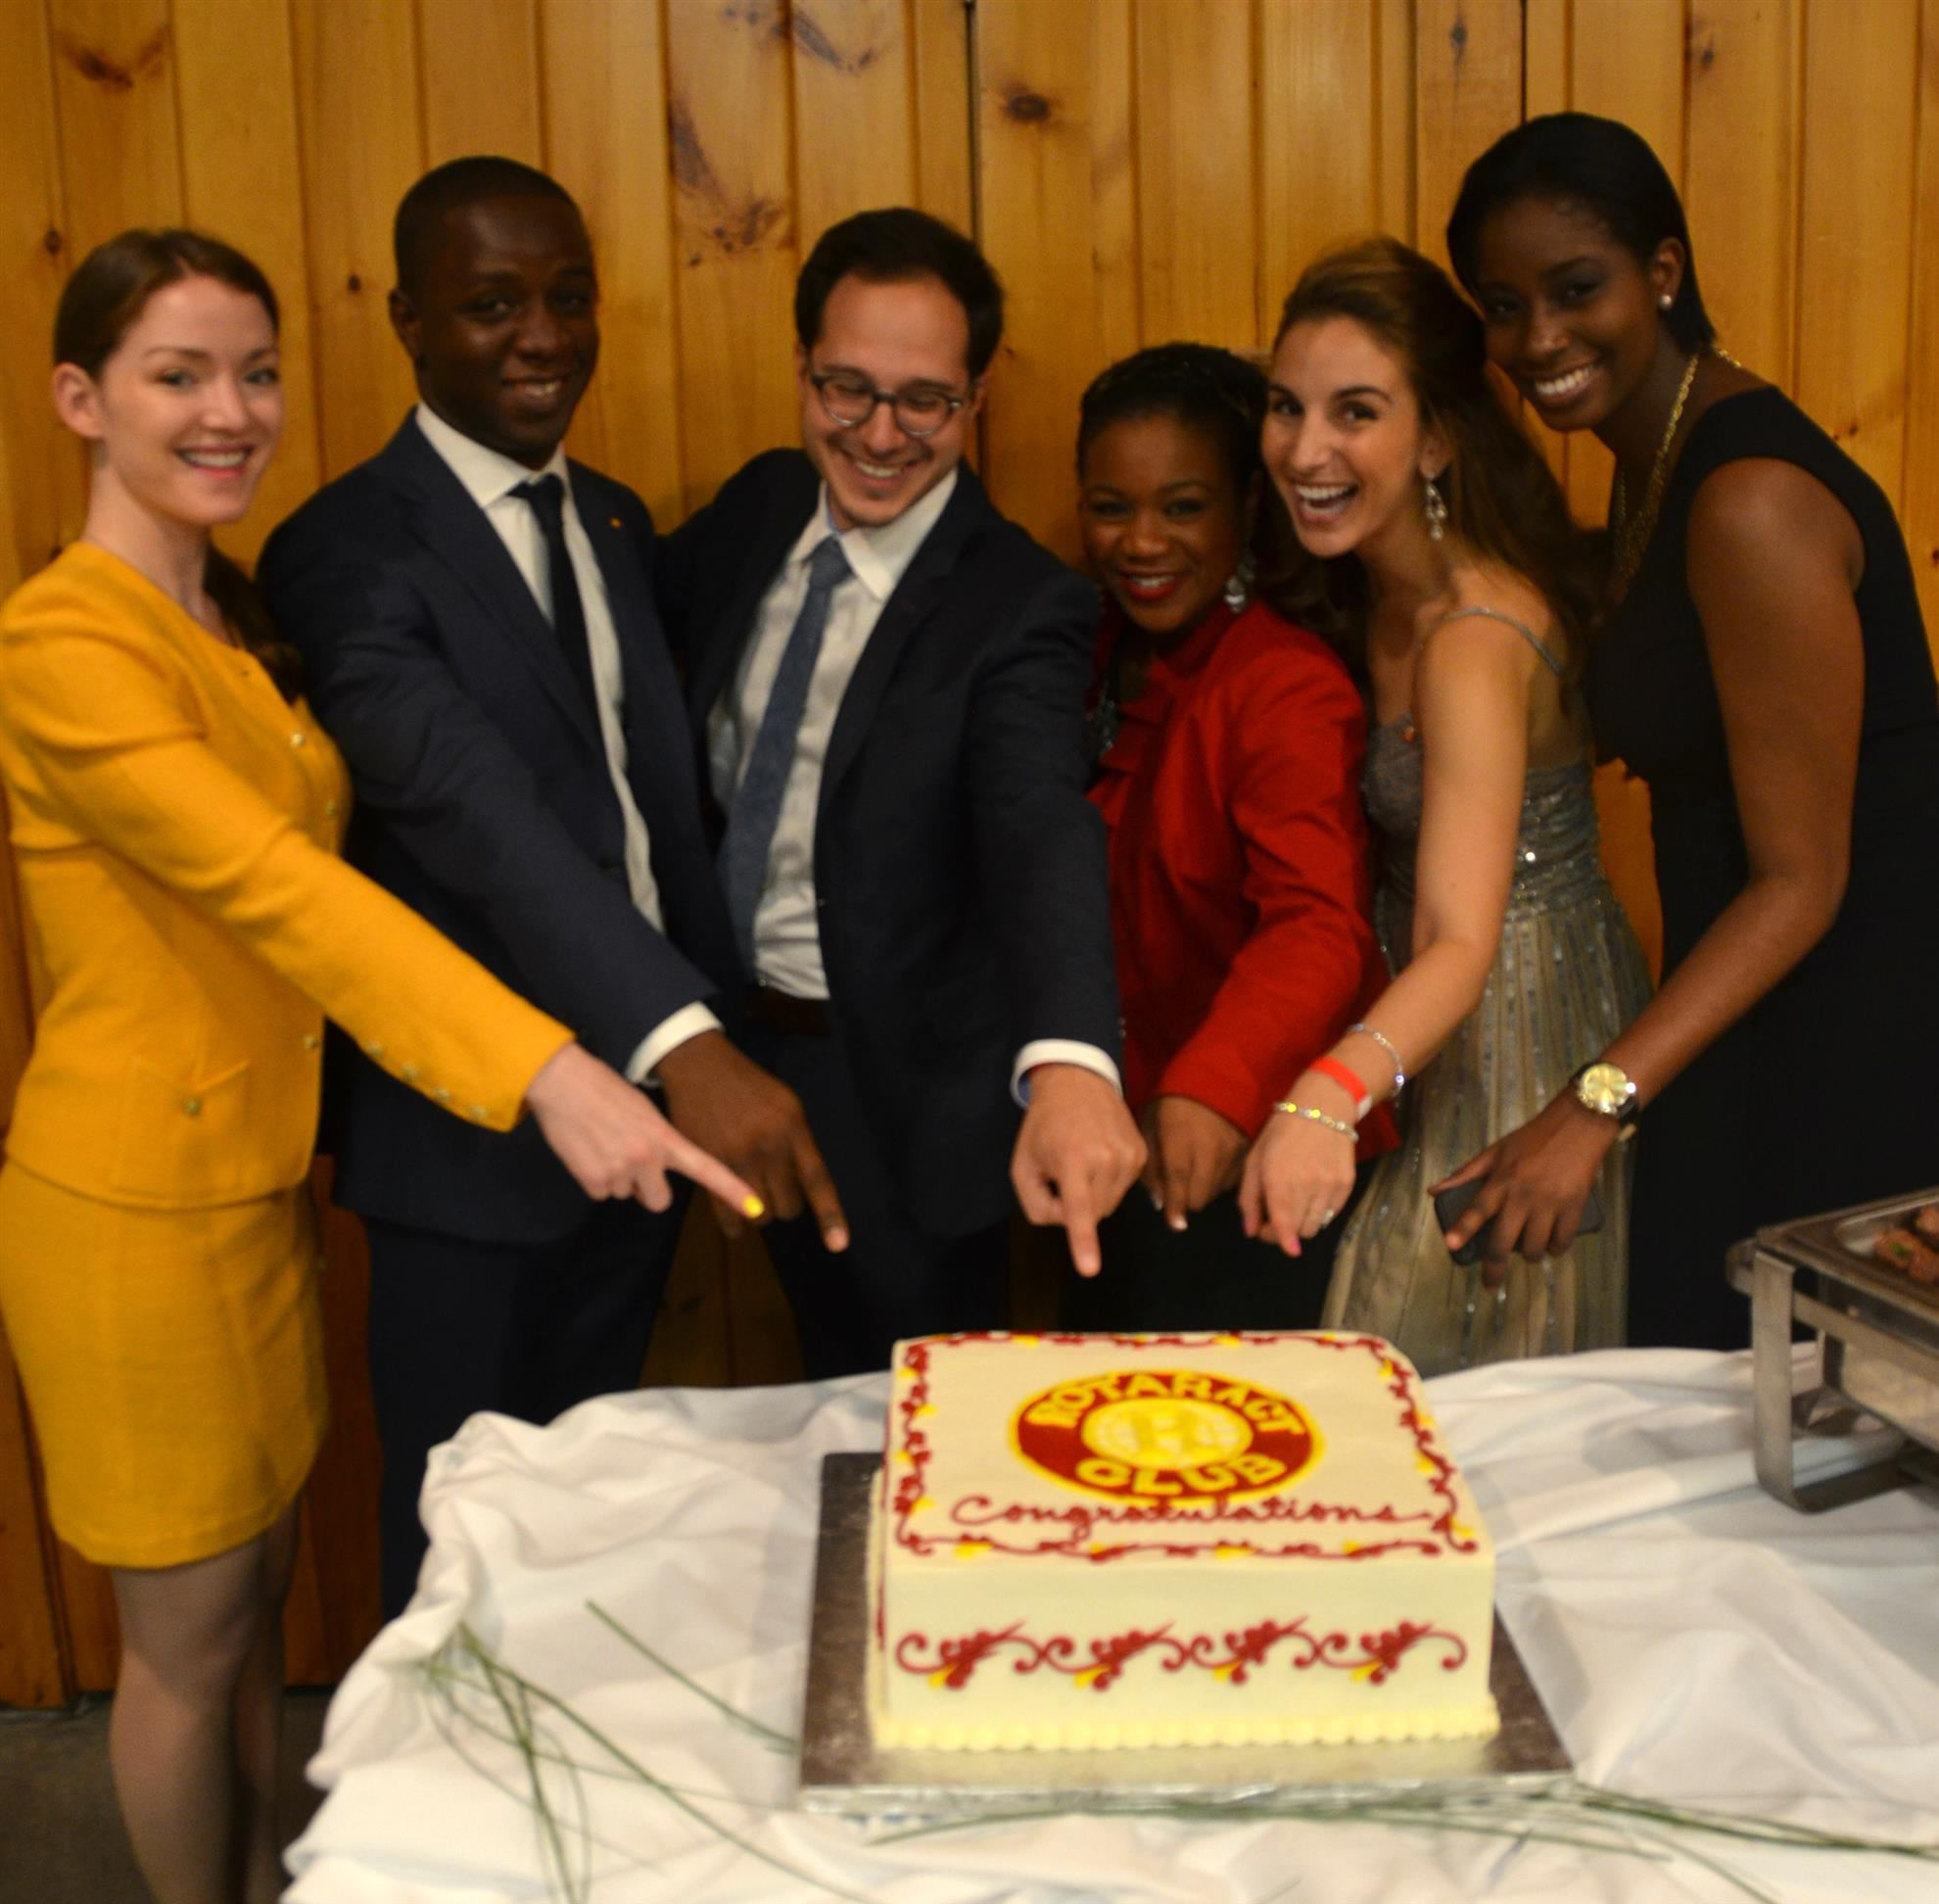 Past board members posing with our anniversary cake.